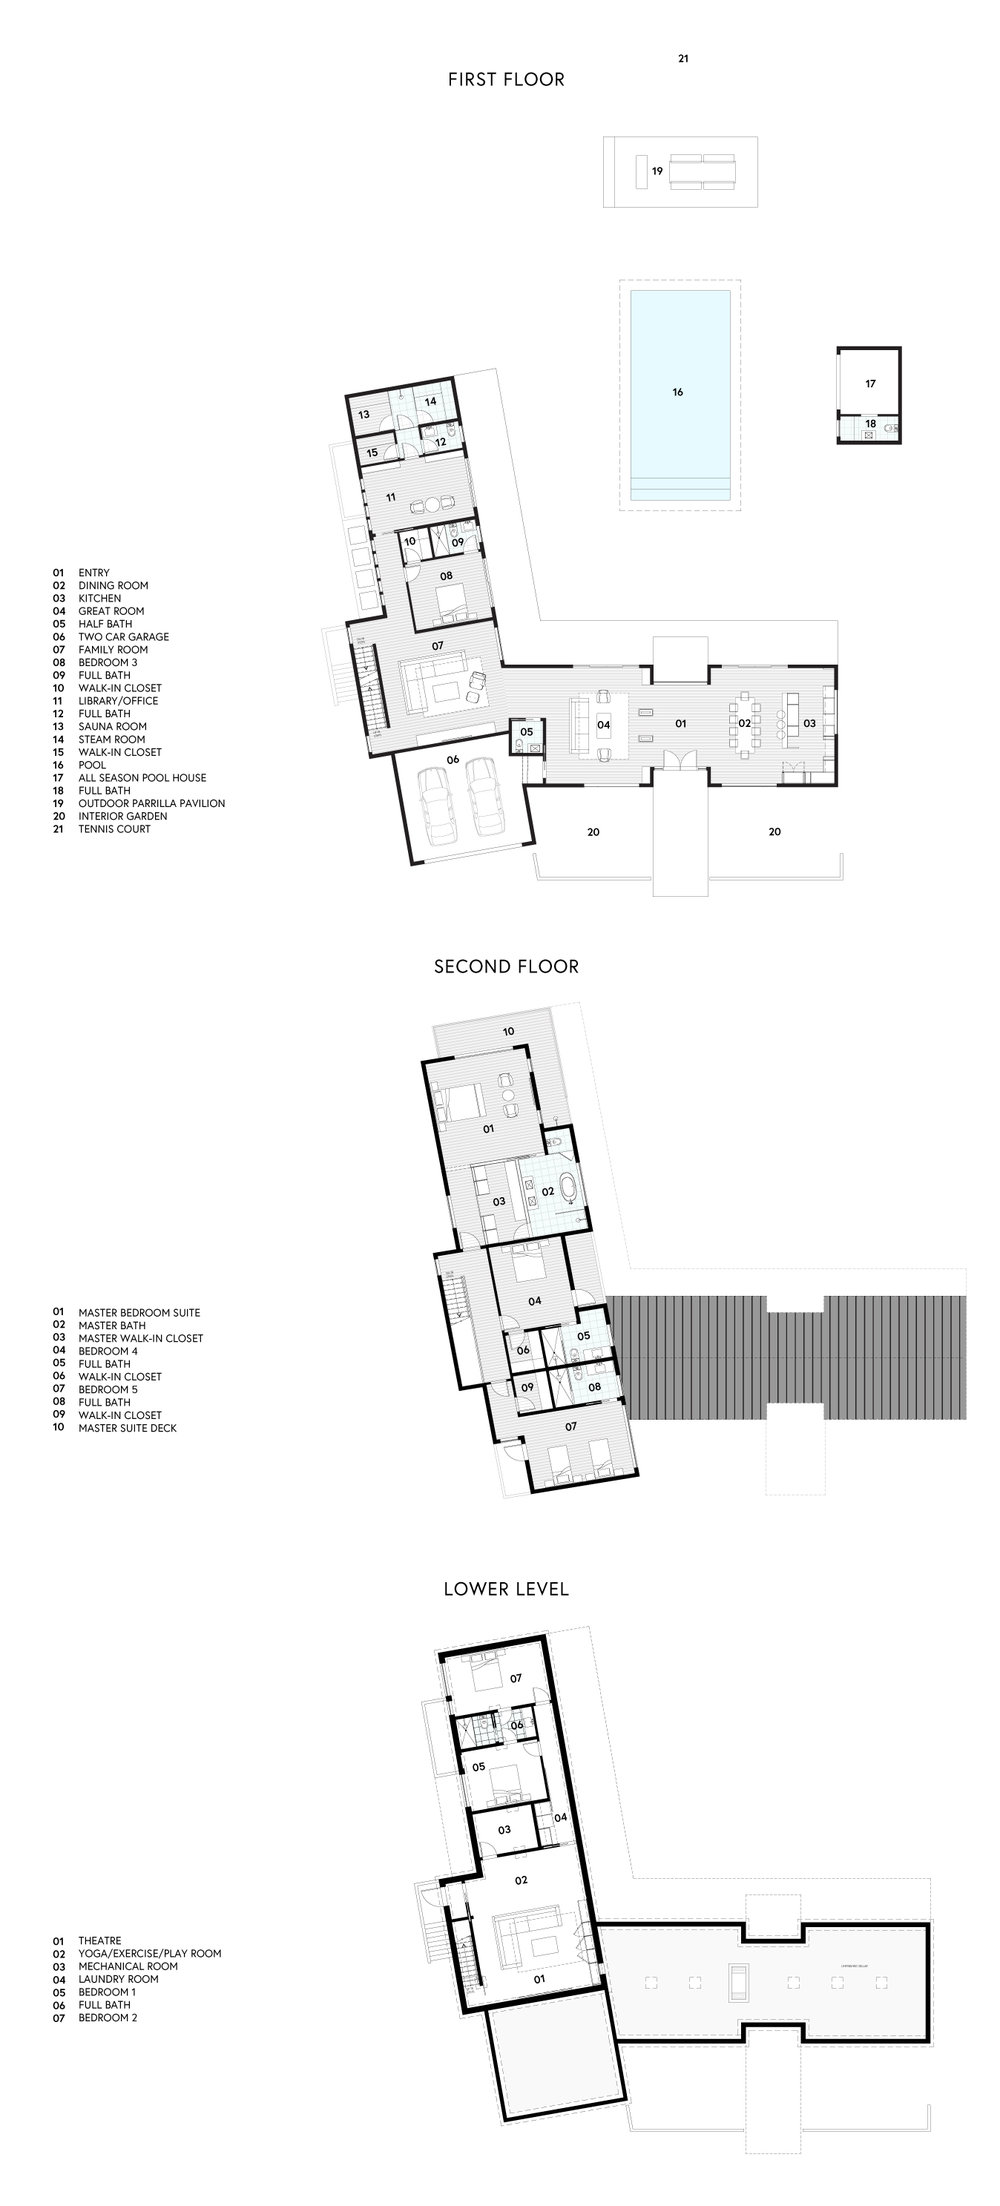 170612_Atelier by SZ Website_Atelier 22_Floor Plans.jpg